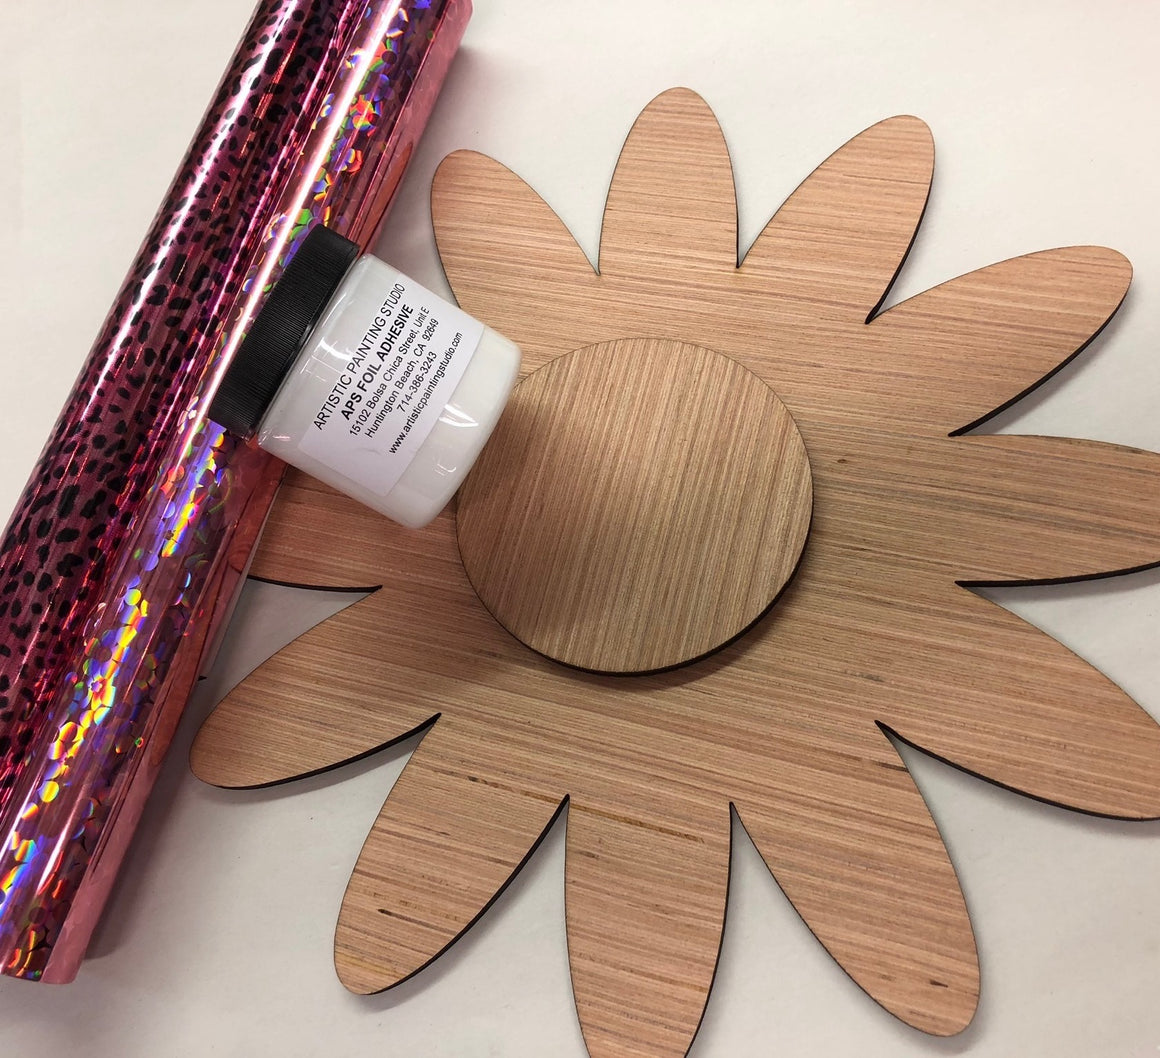 Spring Flower Foil Creation Kit